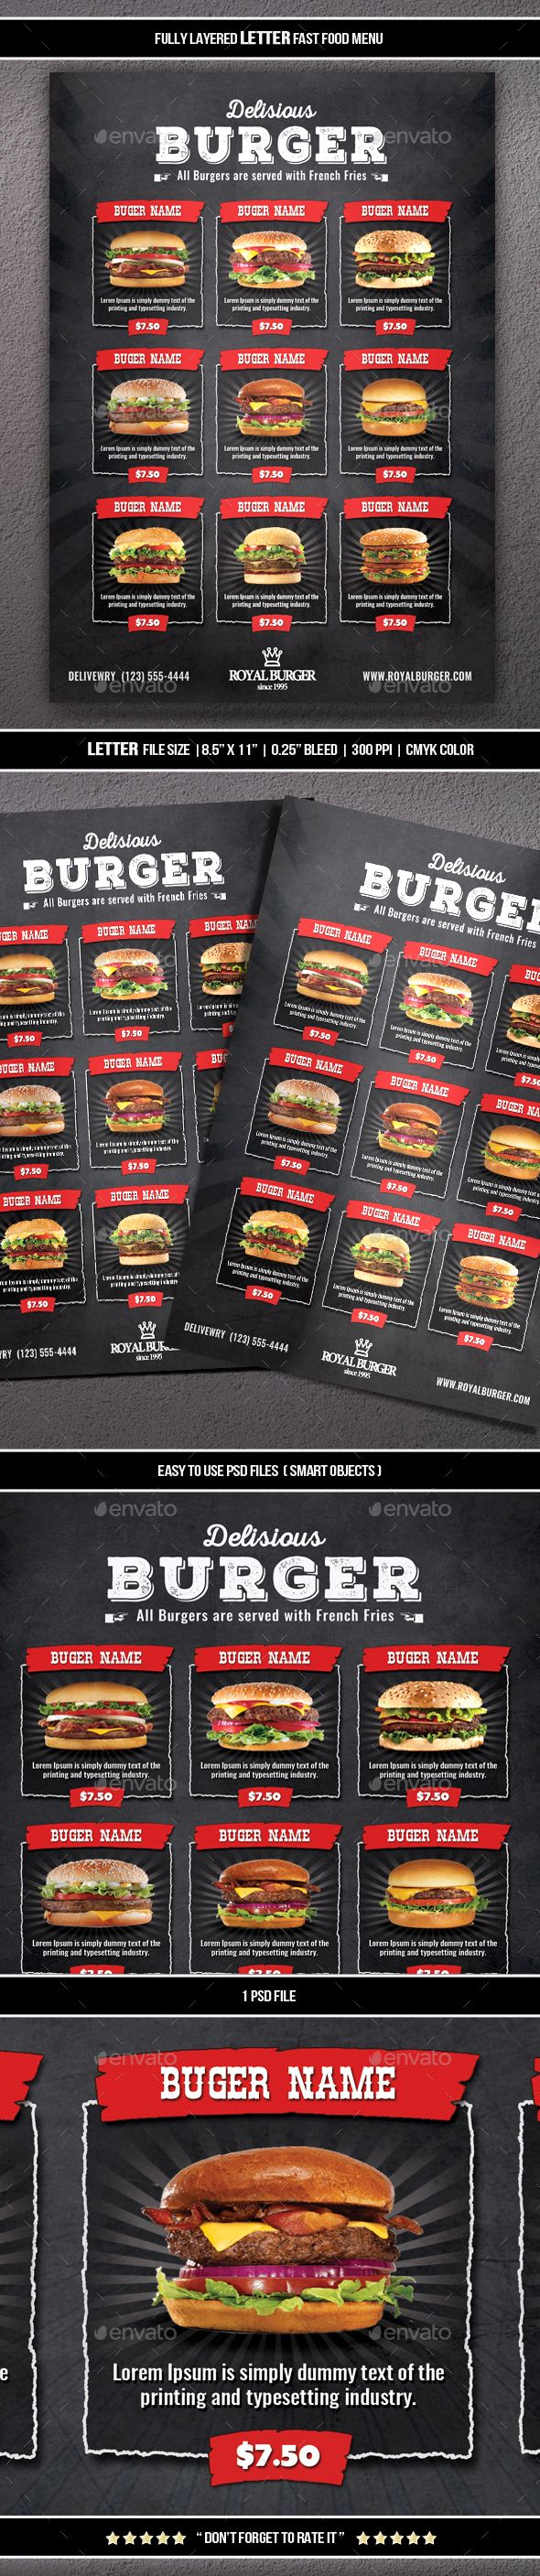 Fast Food Menu Template PSD